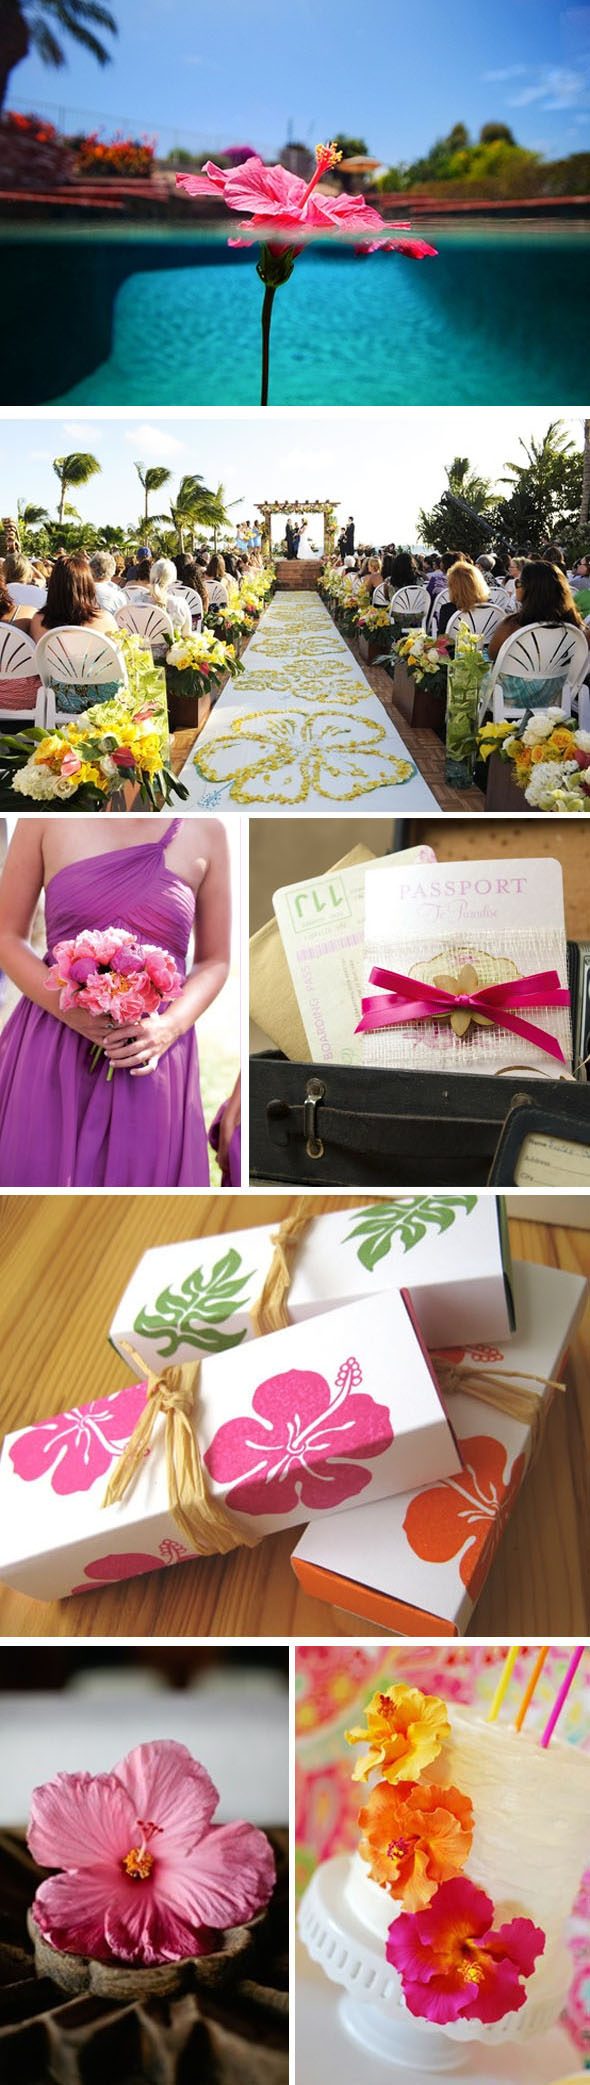 hibiscus wedding ideas